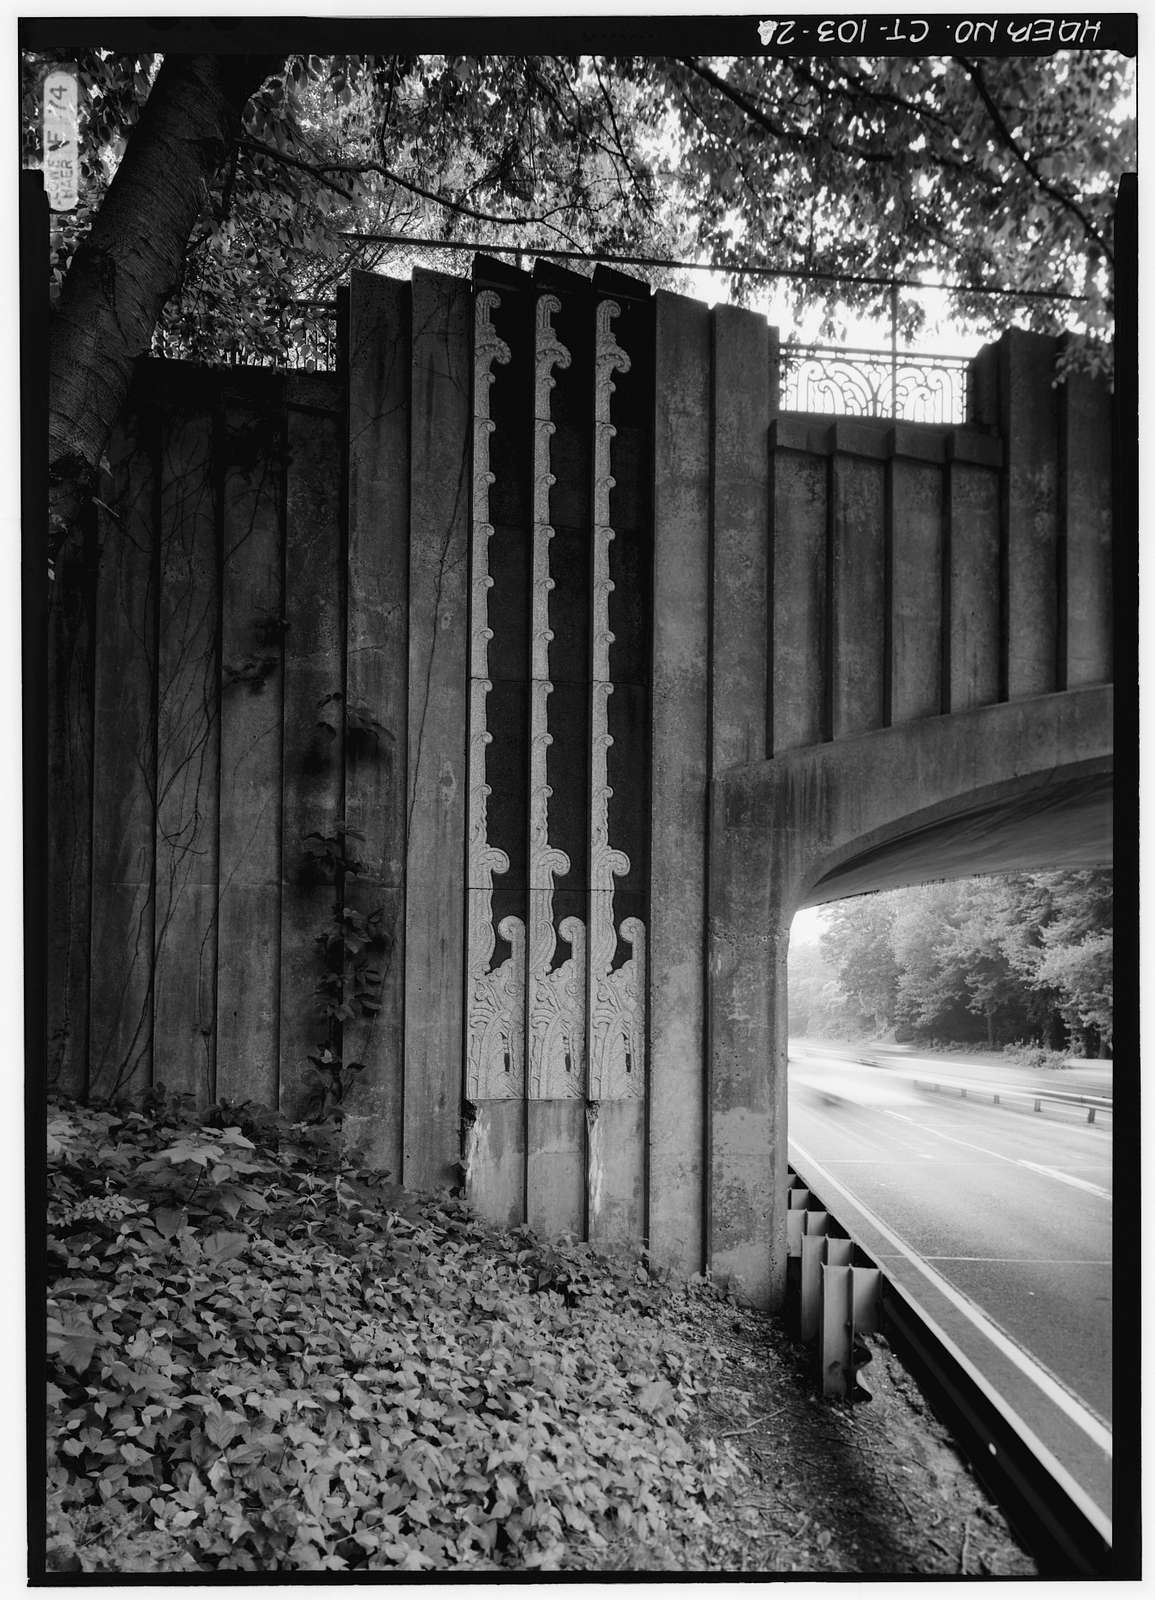 Merritt Parkway, North Avenue Bridge, Spanning Merritt Parkway, Westport, Fairfield County, CT